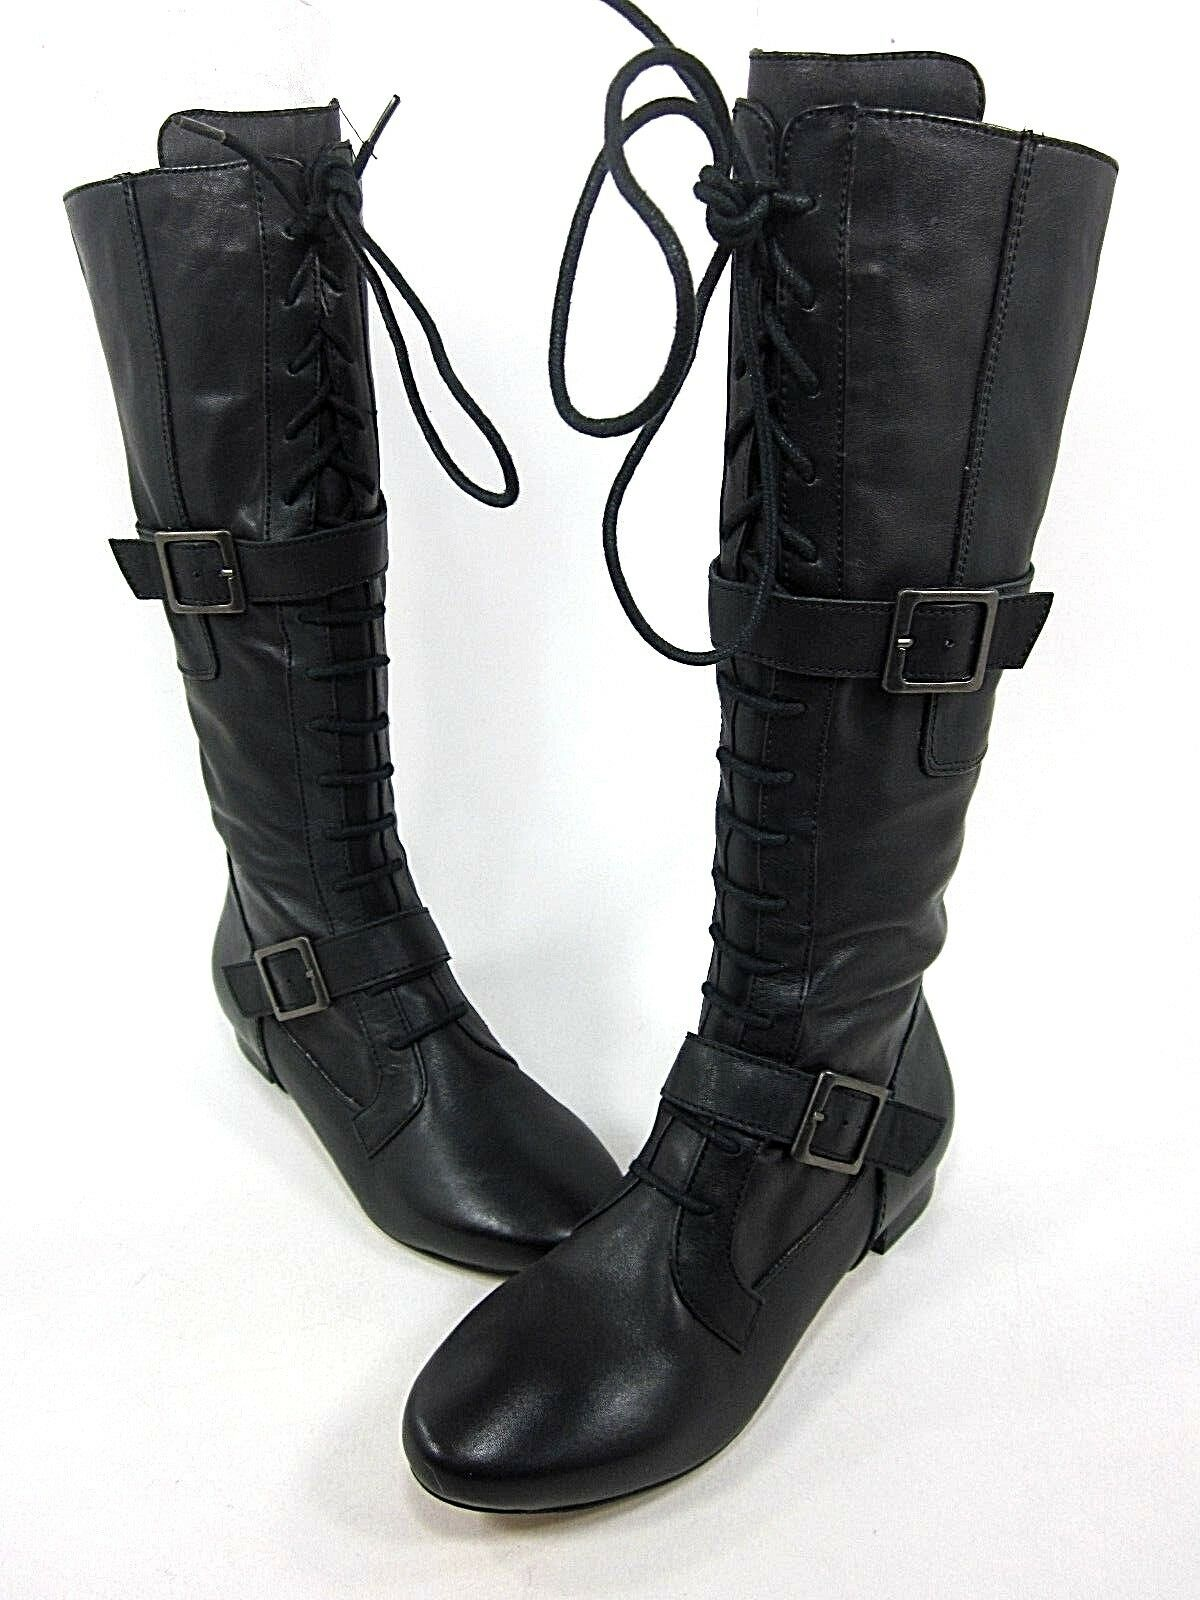 FARYLROBIN, LANCE, KNEE-HIGH BOOT, WOMENS, BLACK, US 6M, LEATHER, NEW W/O BOX